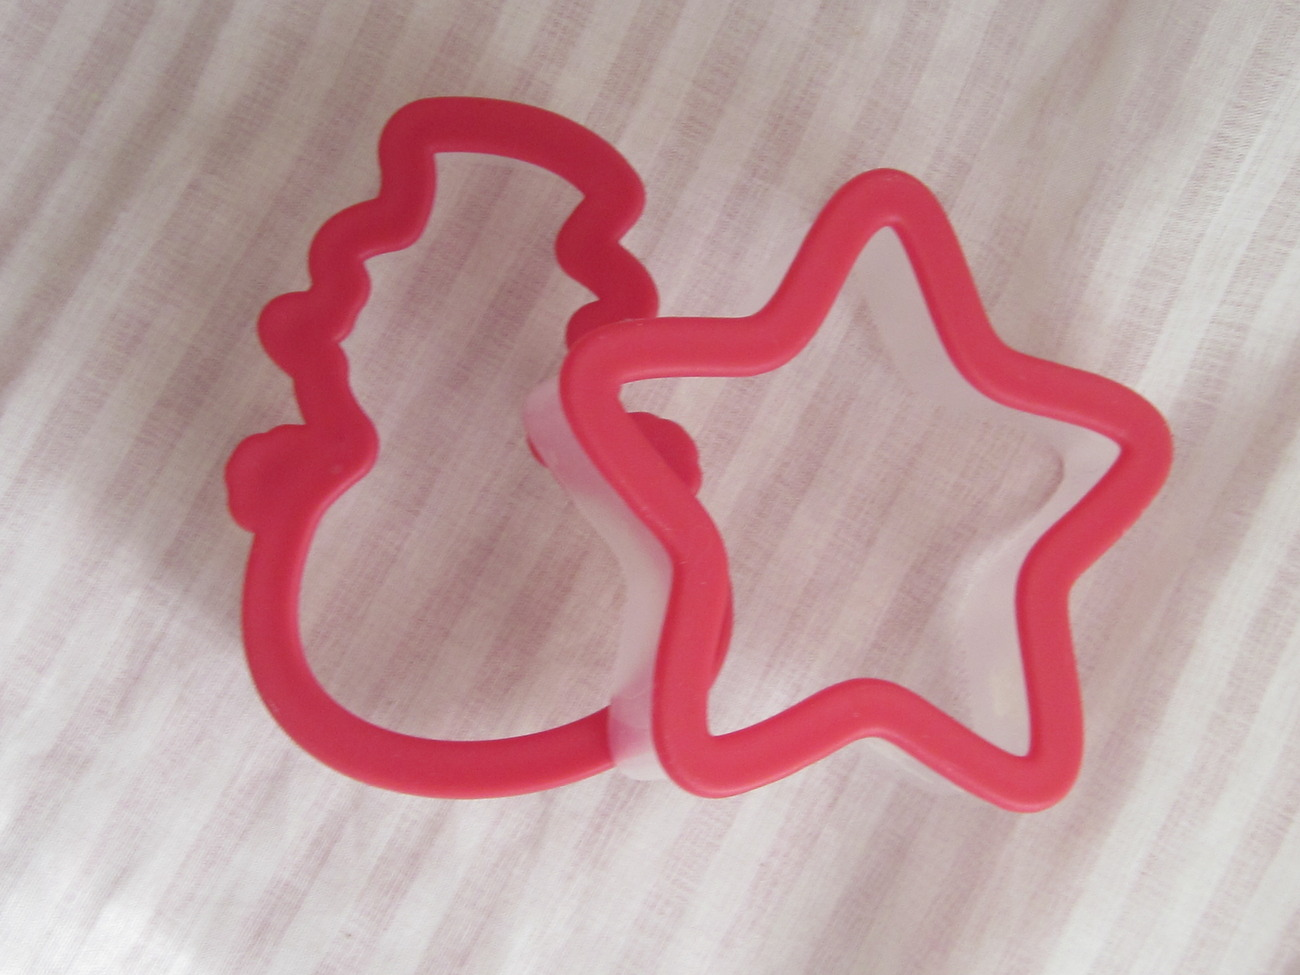 Snowman and Star Cookie Cutters Clear and Red Plastic 3.5 Inches